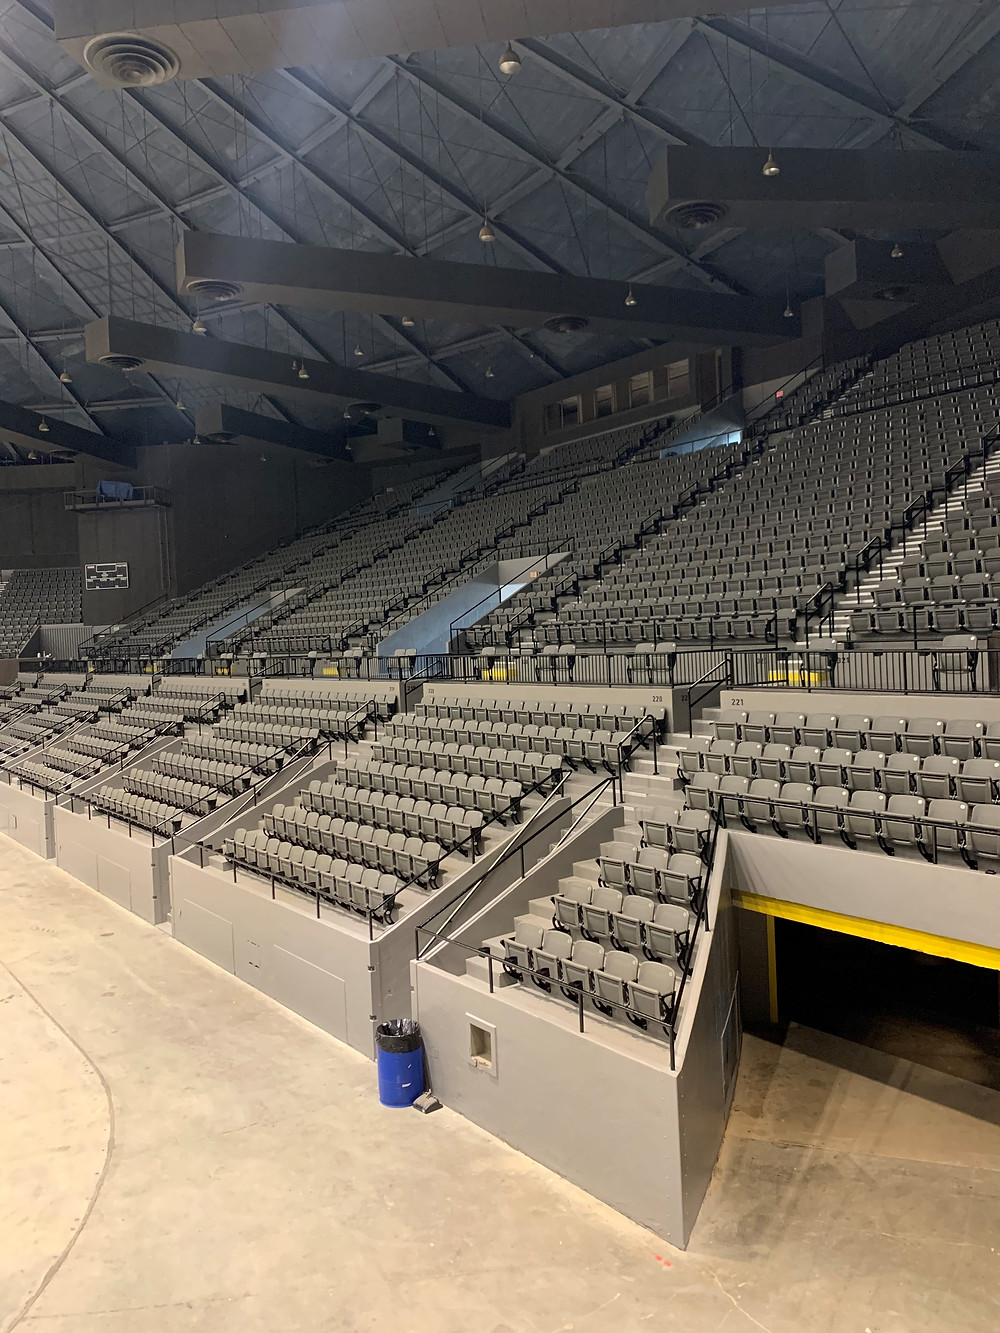 The Mississippi Coliseum is the hub for several activities and events that take place on the Fairgrounds every year. It's expansive arena floor of 25,449 square feet is complete with sound and lighting facilities and boasts of seating for 6,500 people at a time.